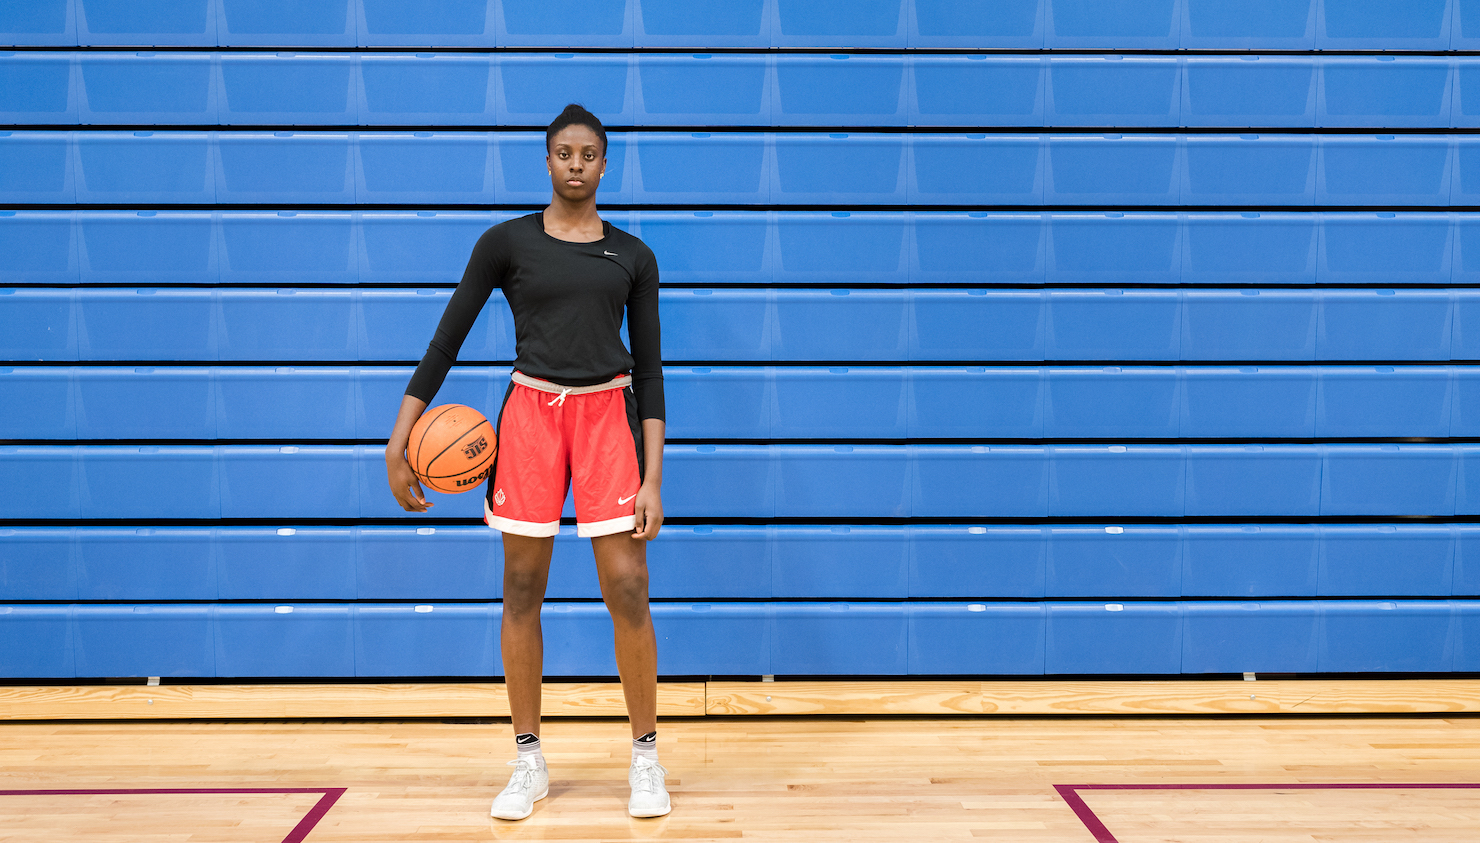 Laeticia Amihere Is the Future of Women s Basketball - VICE Sports 913cfcab04